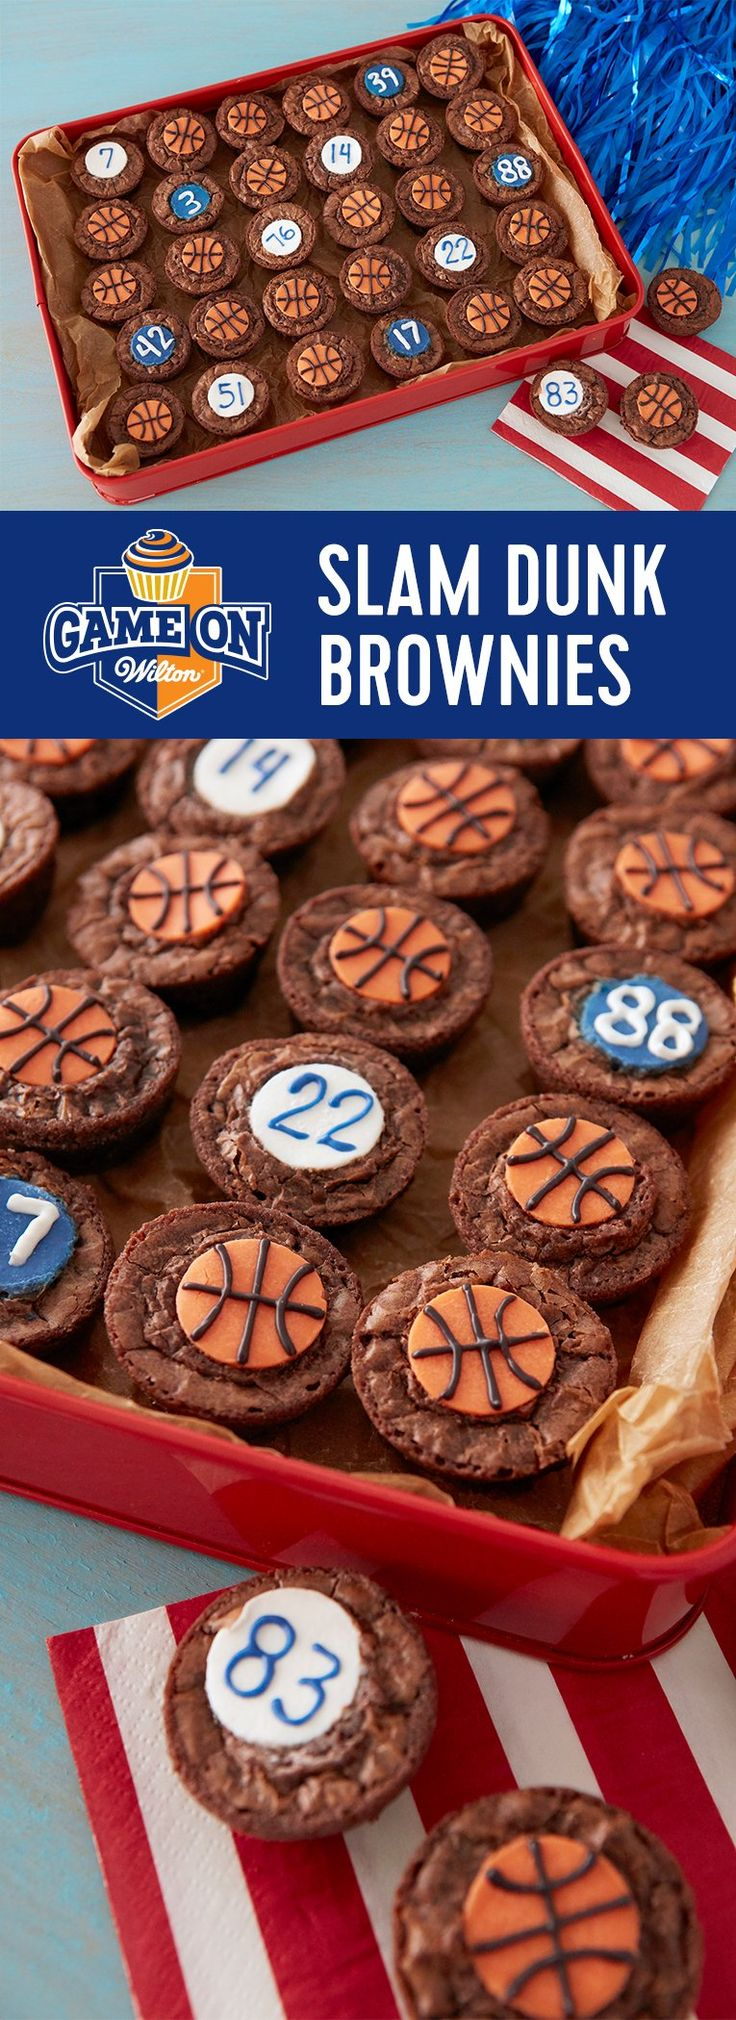 Slam Dunk Brownies - Love basketball? Love brownies? Here's a quick and easy basketball party treat that scores a 3-pointer: chocolatey brownies, Candy Melts candy decorations, and making 48 treats at once! It's an easy feat to complete using the Wilton Mega Mini Muffin Pan.